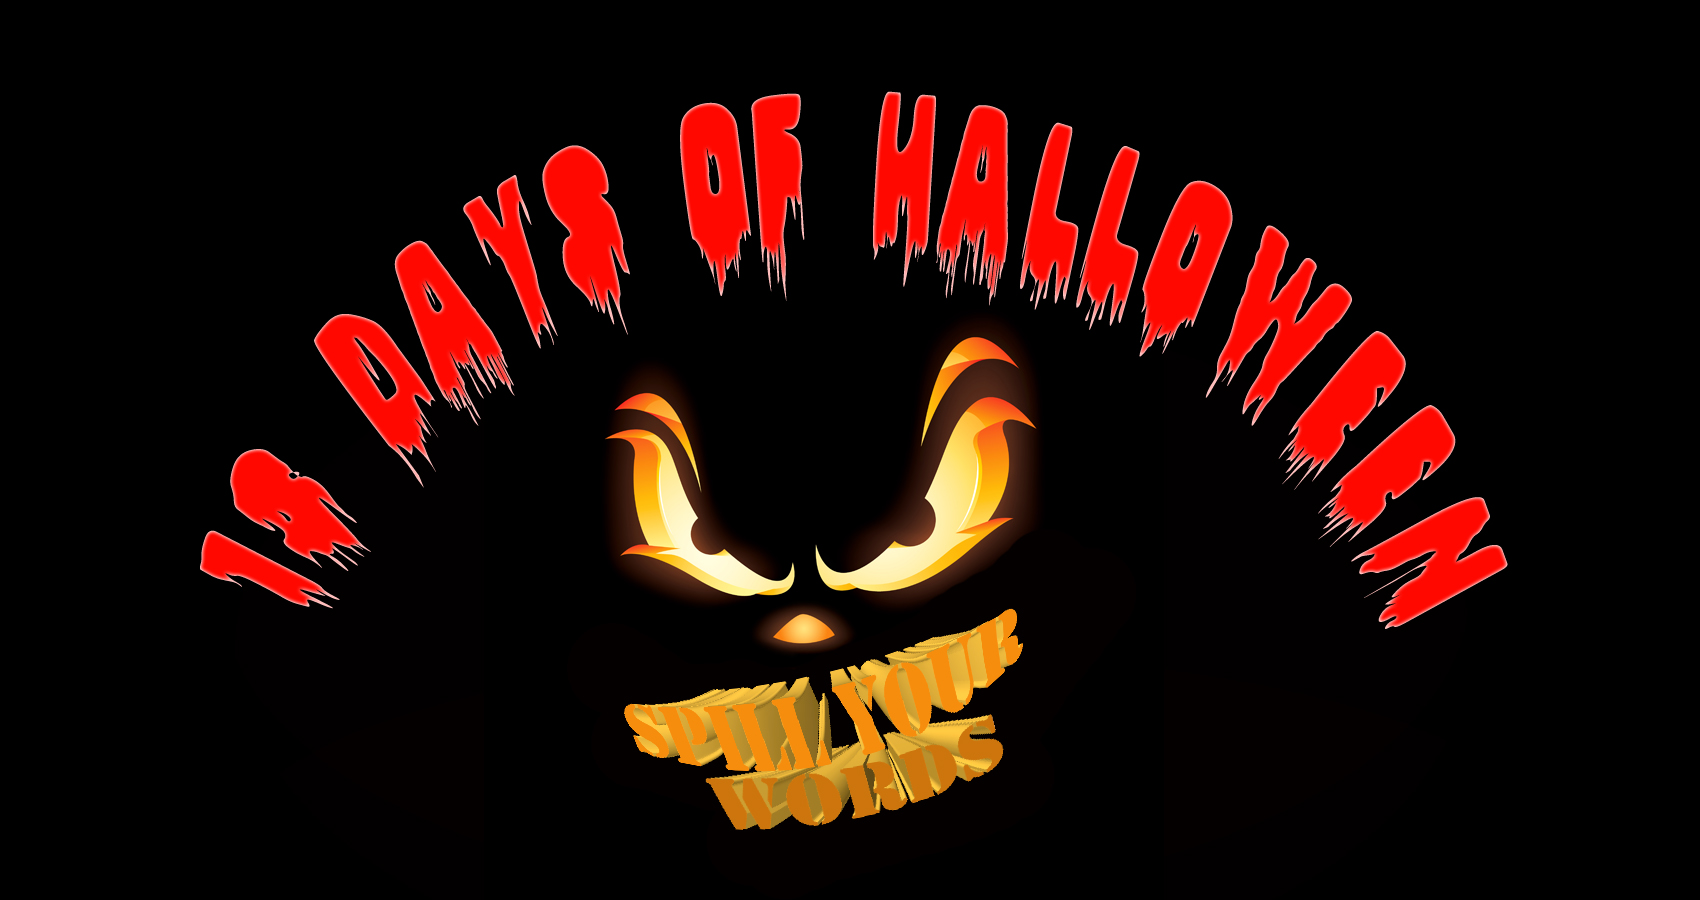 13 Days of Halloween series submission page at Spillwords.com